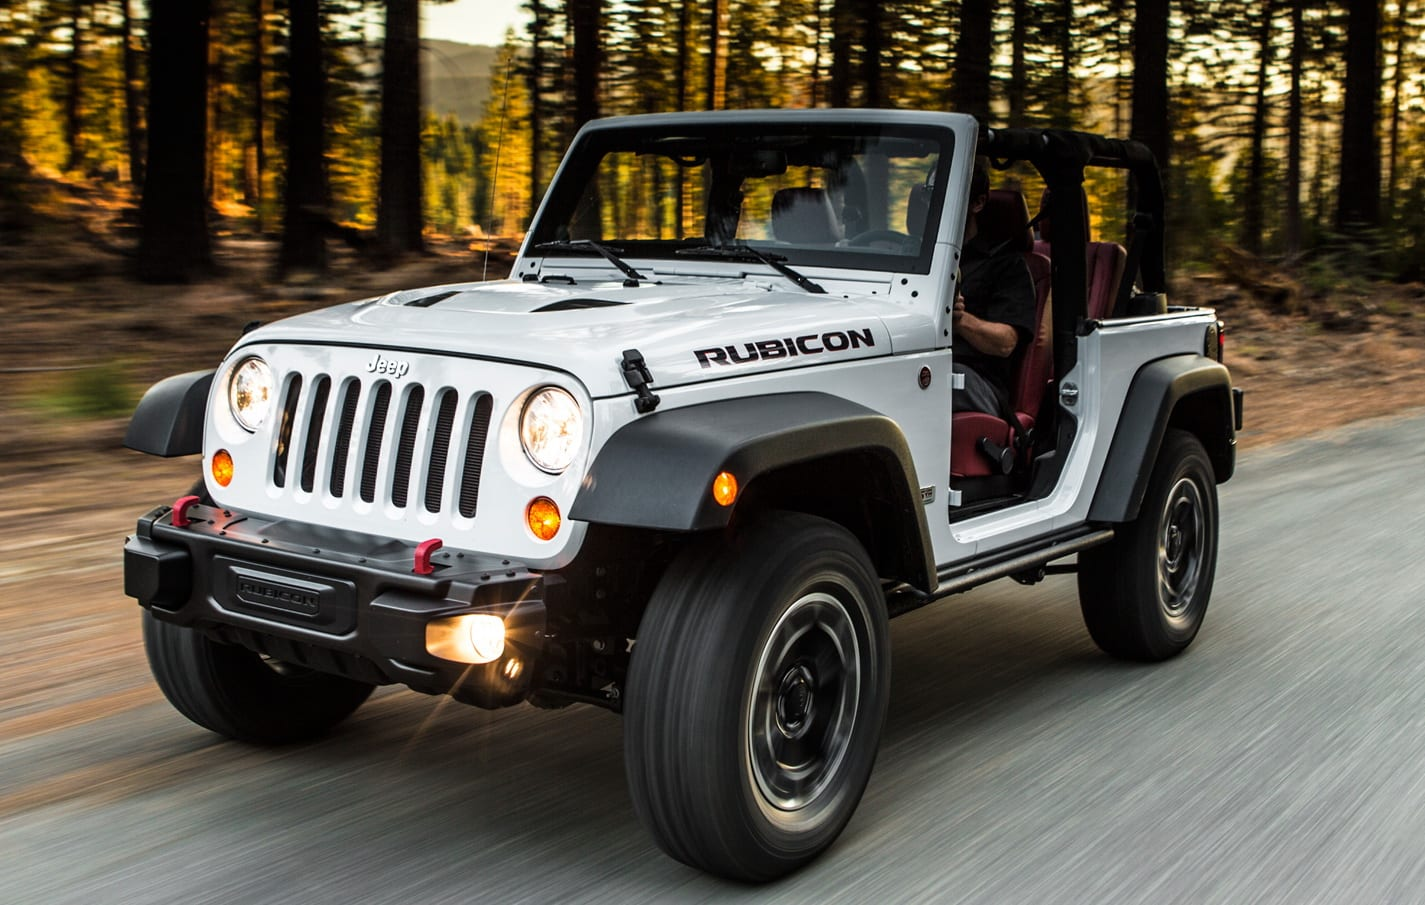 hight resolution of a white 2013 jeep wrangler rubicon is driving